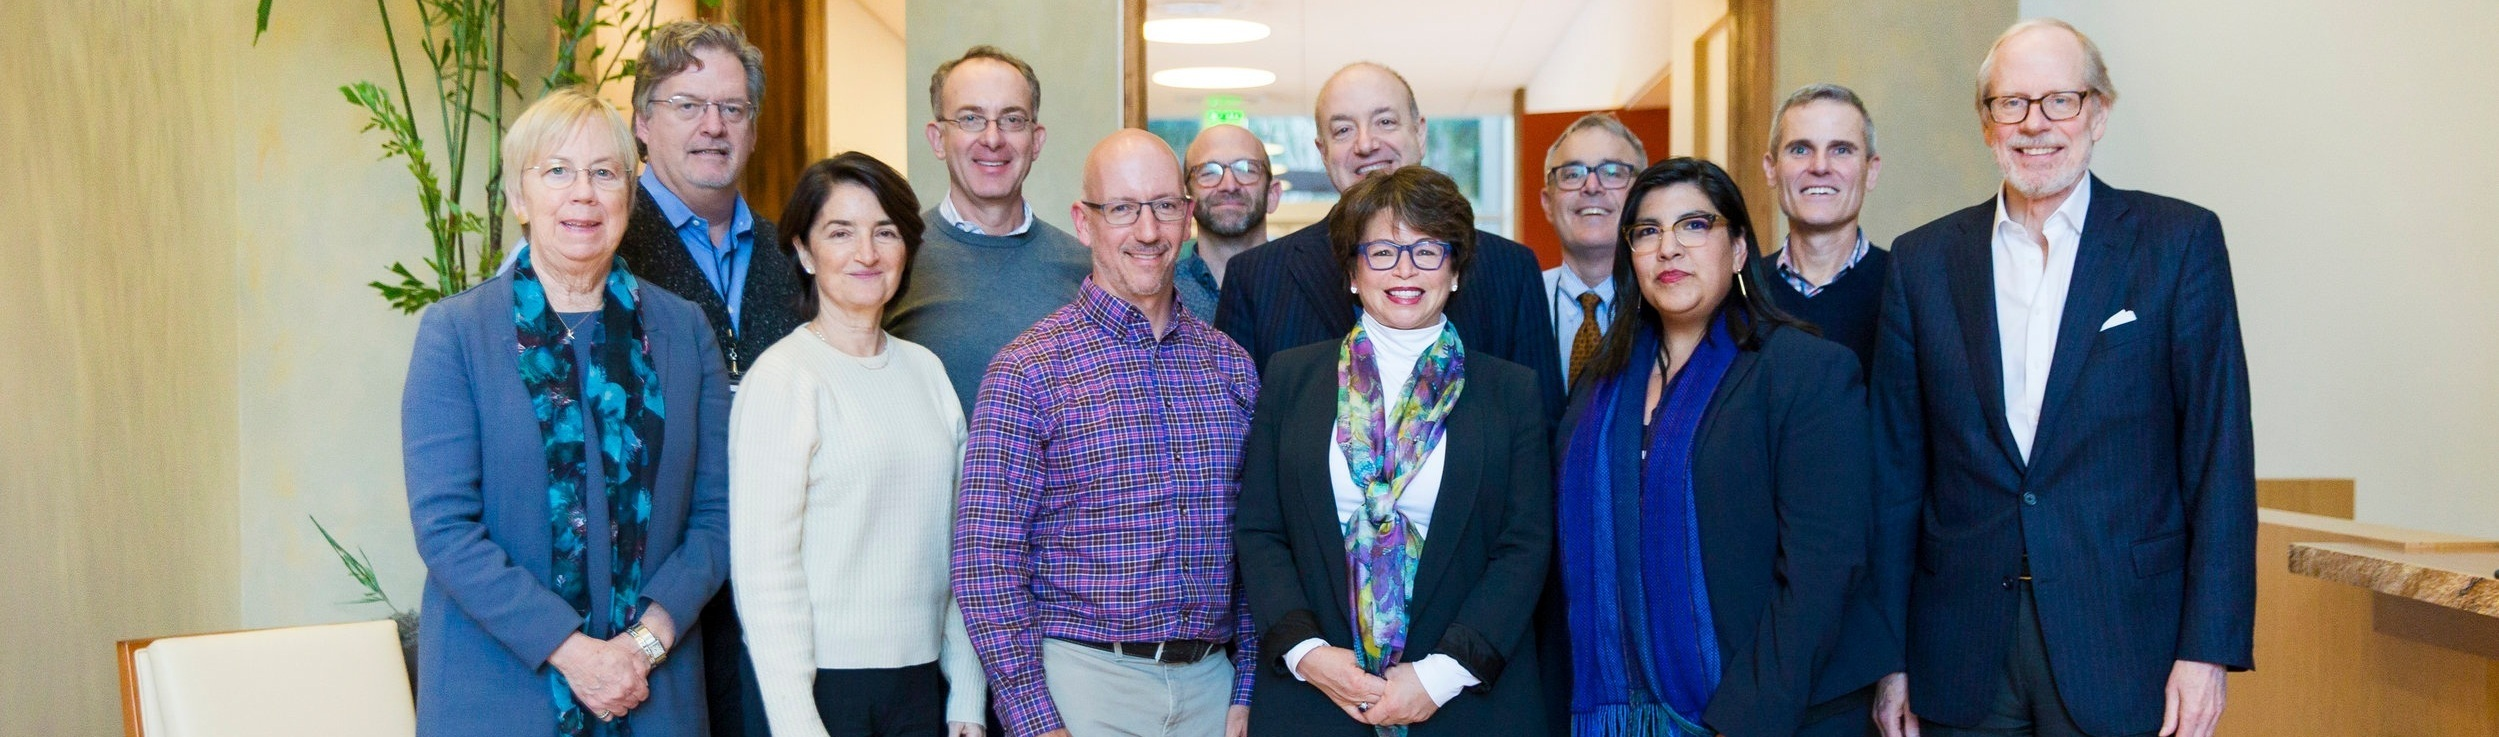 Participants from the December 2018 gathering of the Presidents' Forum on Racial Equity in Philanthropy, with guest speaker Valerie Jarrett, former senior adviser to President Barack Obama.  Click here  to read the meeting report from the event.